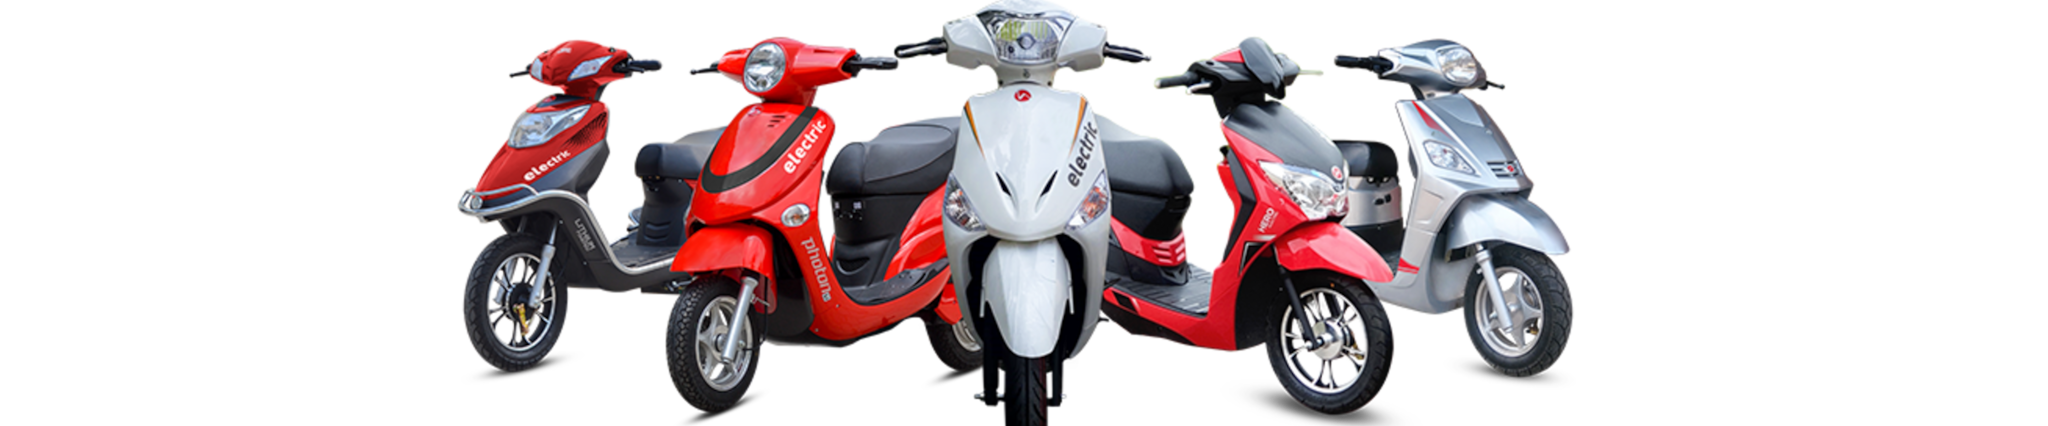 Egalaxy Motors - Two Wheeler Spare Parts and Accessories in Pimpri Chinchwad, Pune